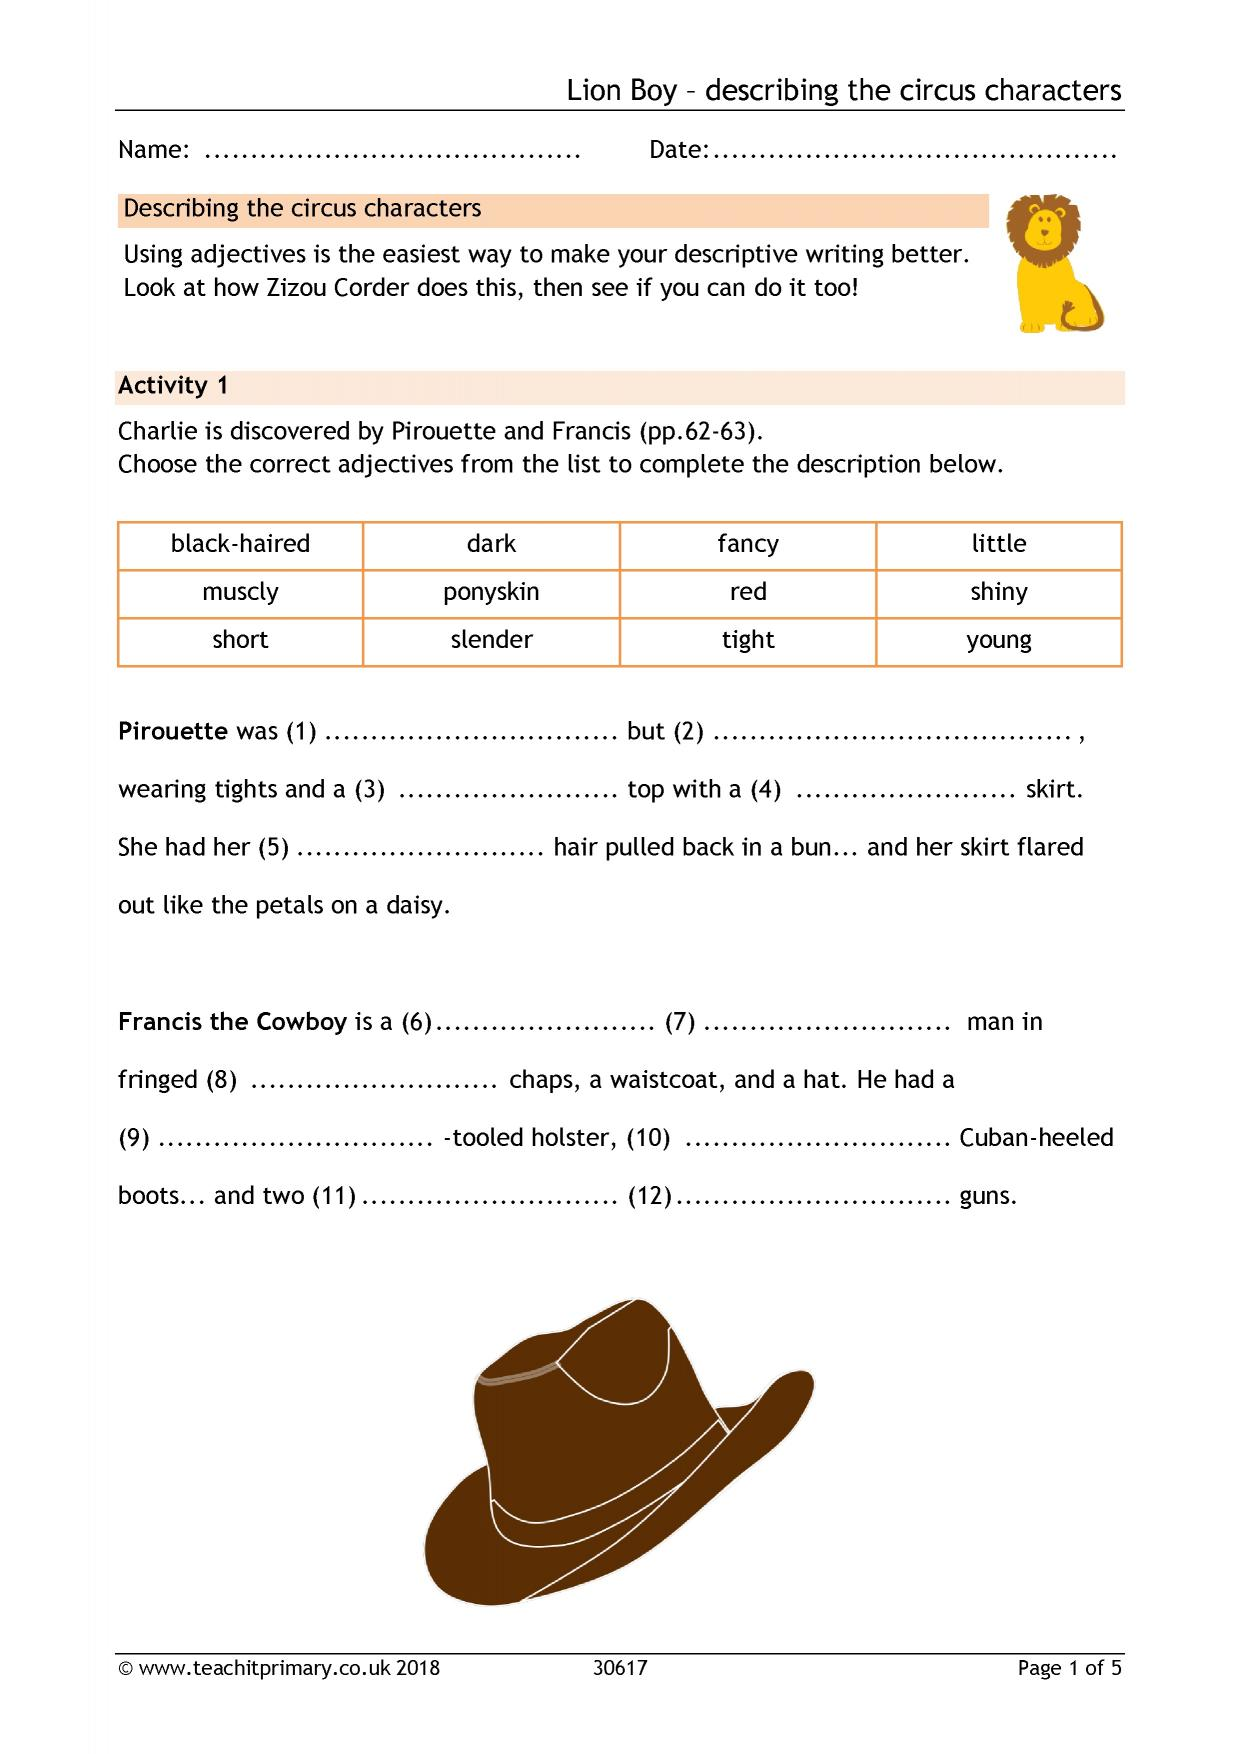 Writing Composition Teaching Resources For Ks2 Teachit Primary